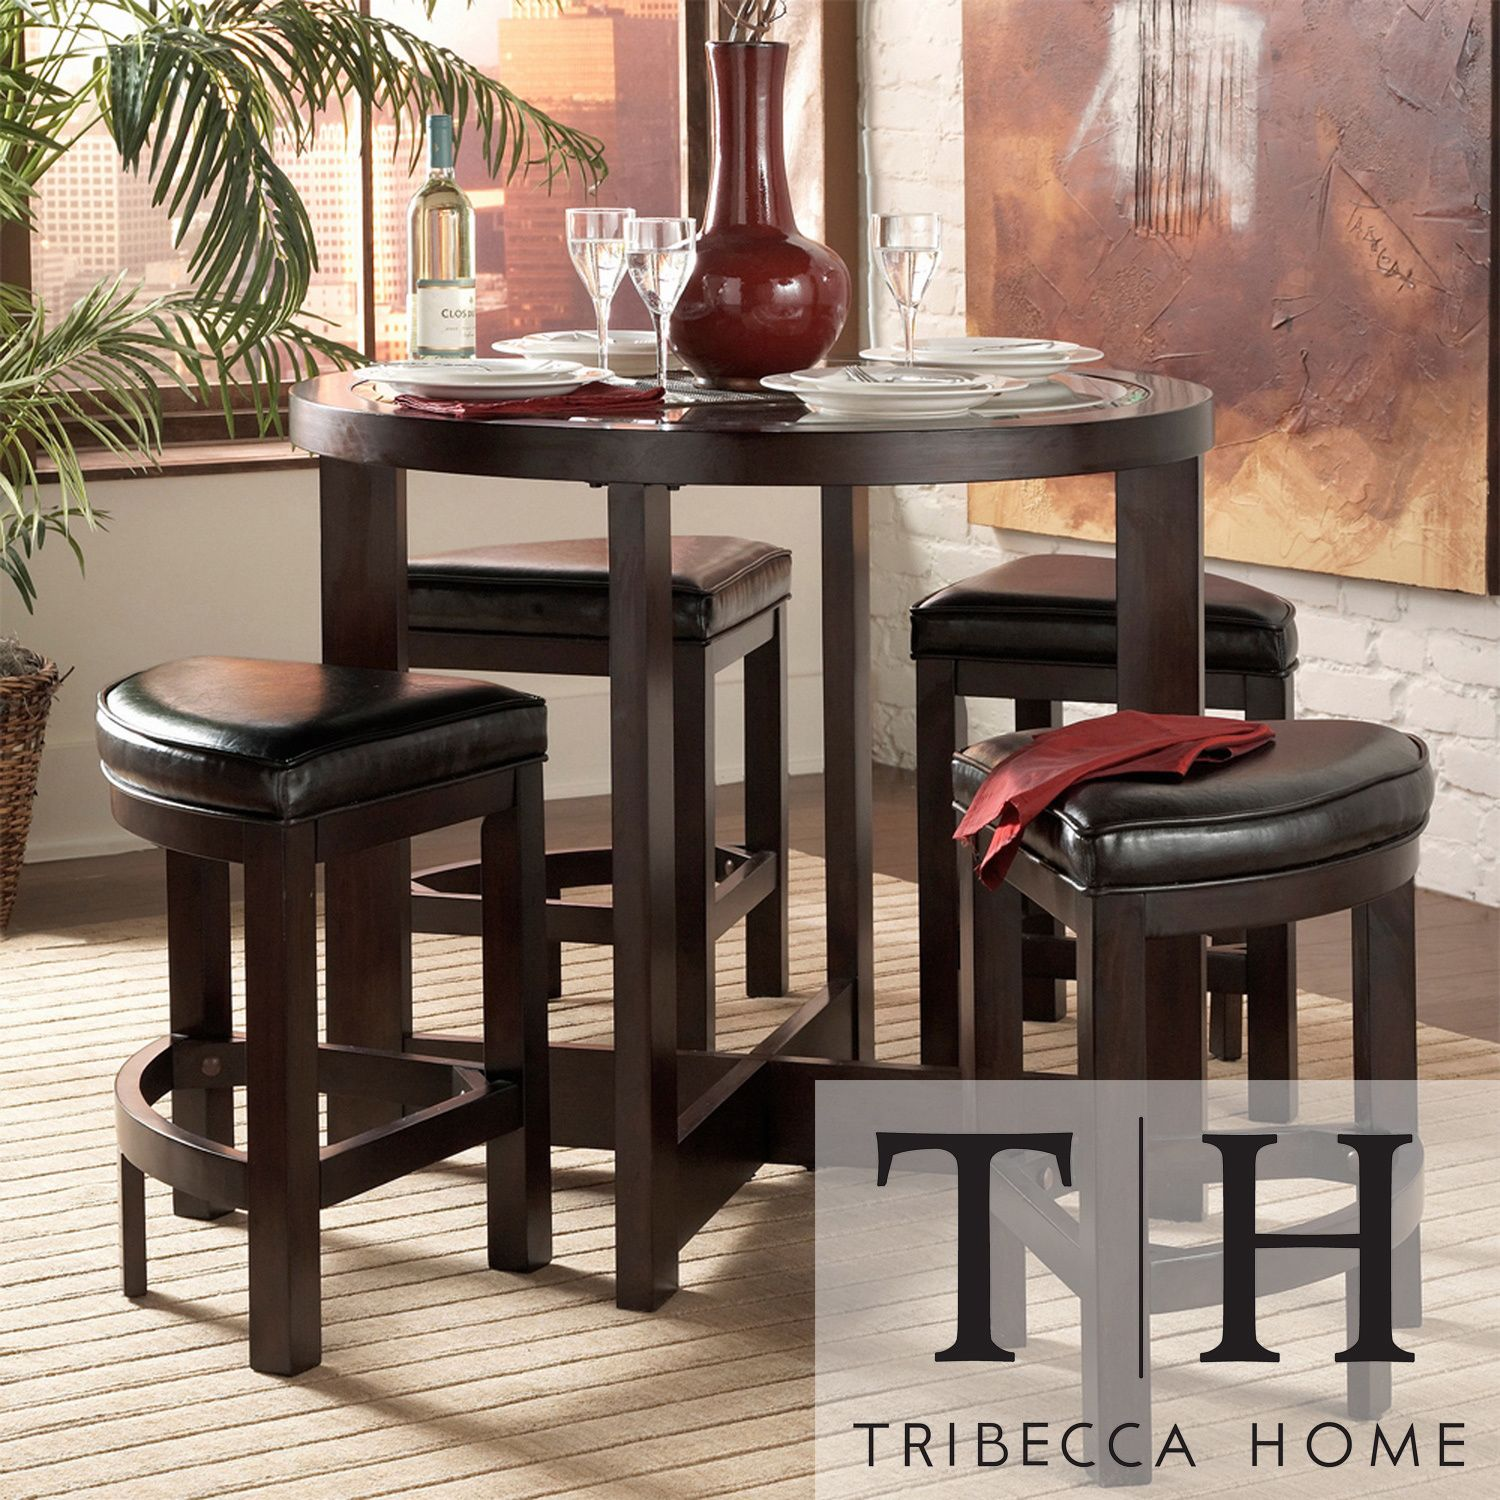 Capria Pub Set Features Clean Lines And Wedge Seating For A Stunning Pub Height Dining Room Sets Review